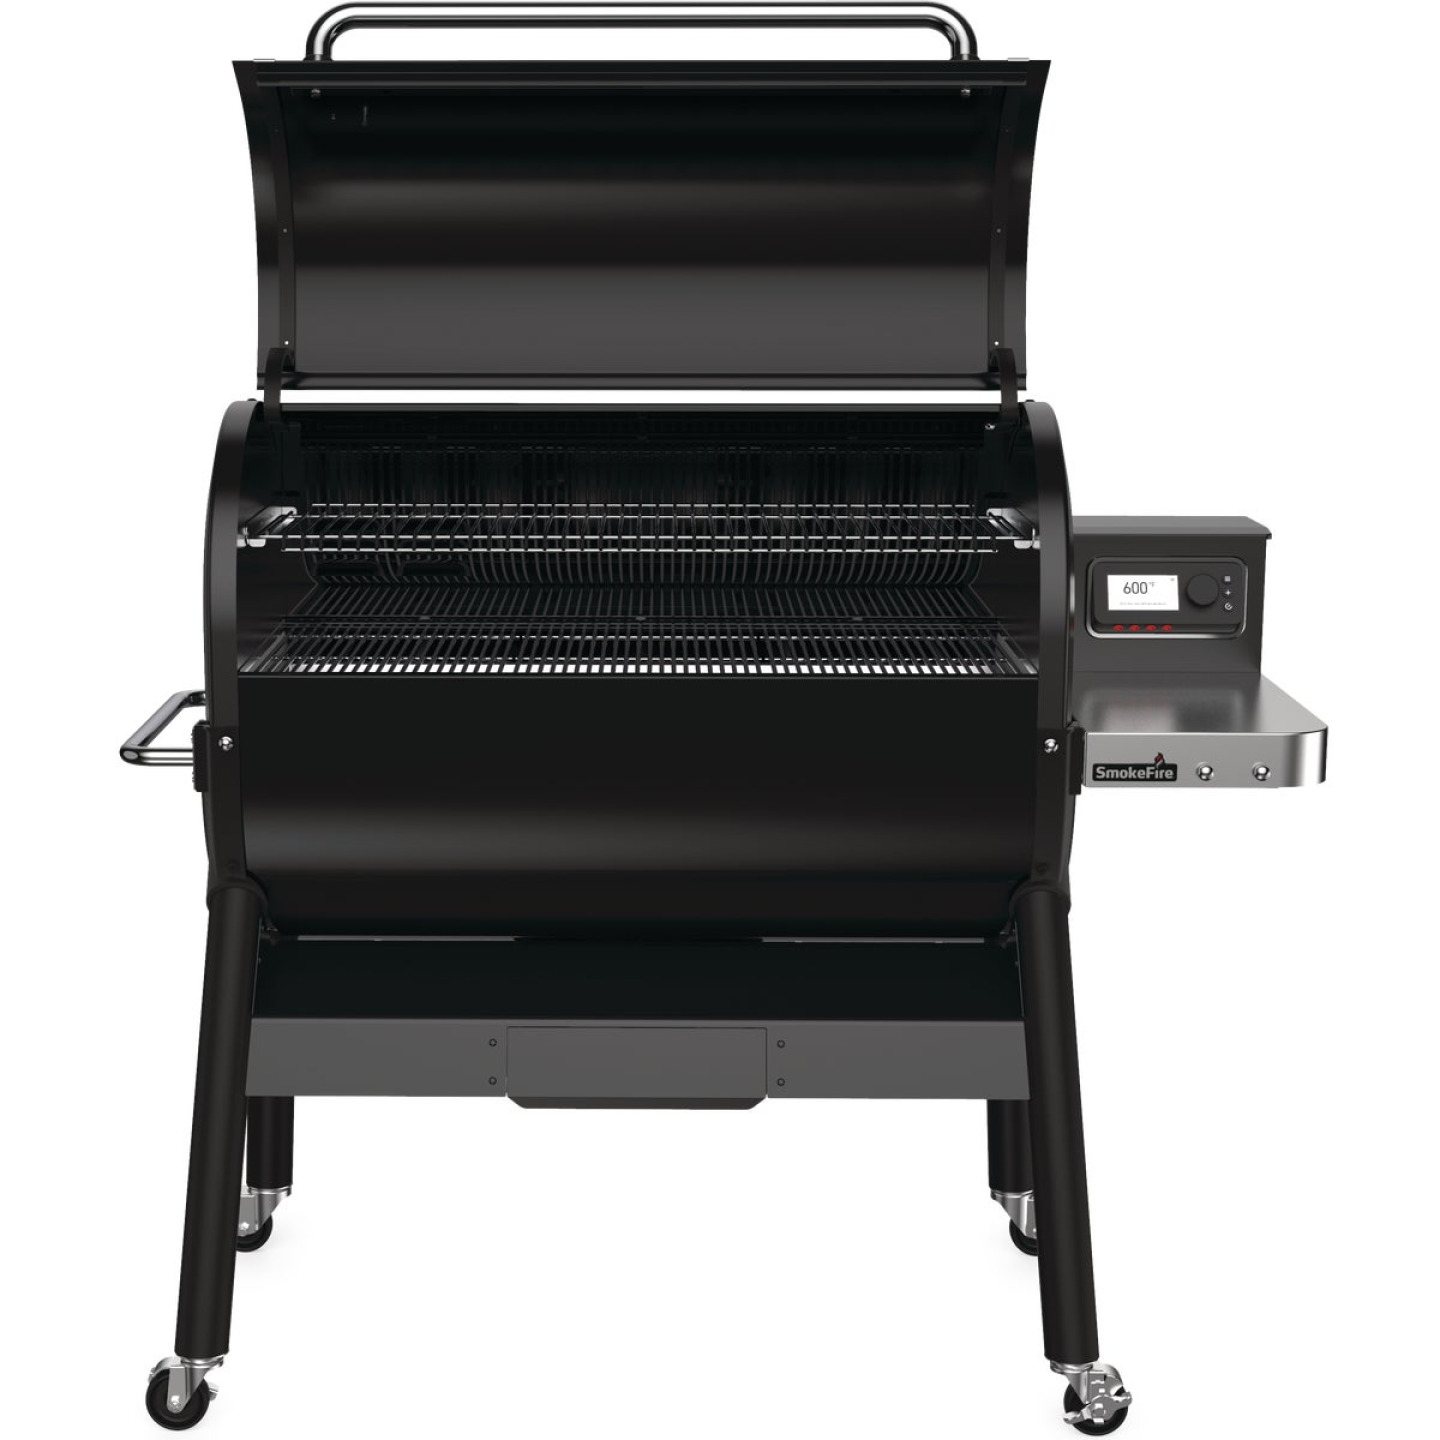 Weber SmokeFire EX6 Black 1008 Sq. In. Wood Pellet Grill Image 7